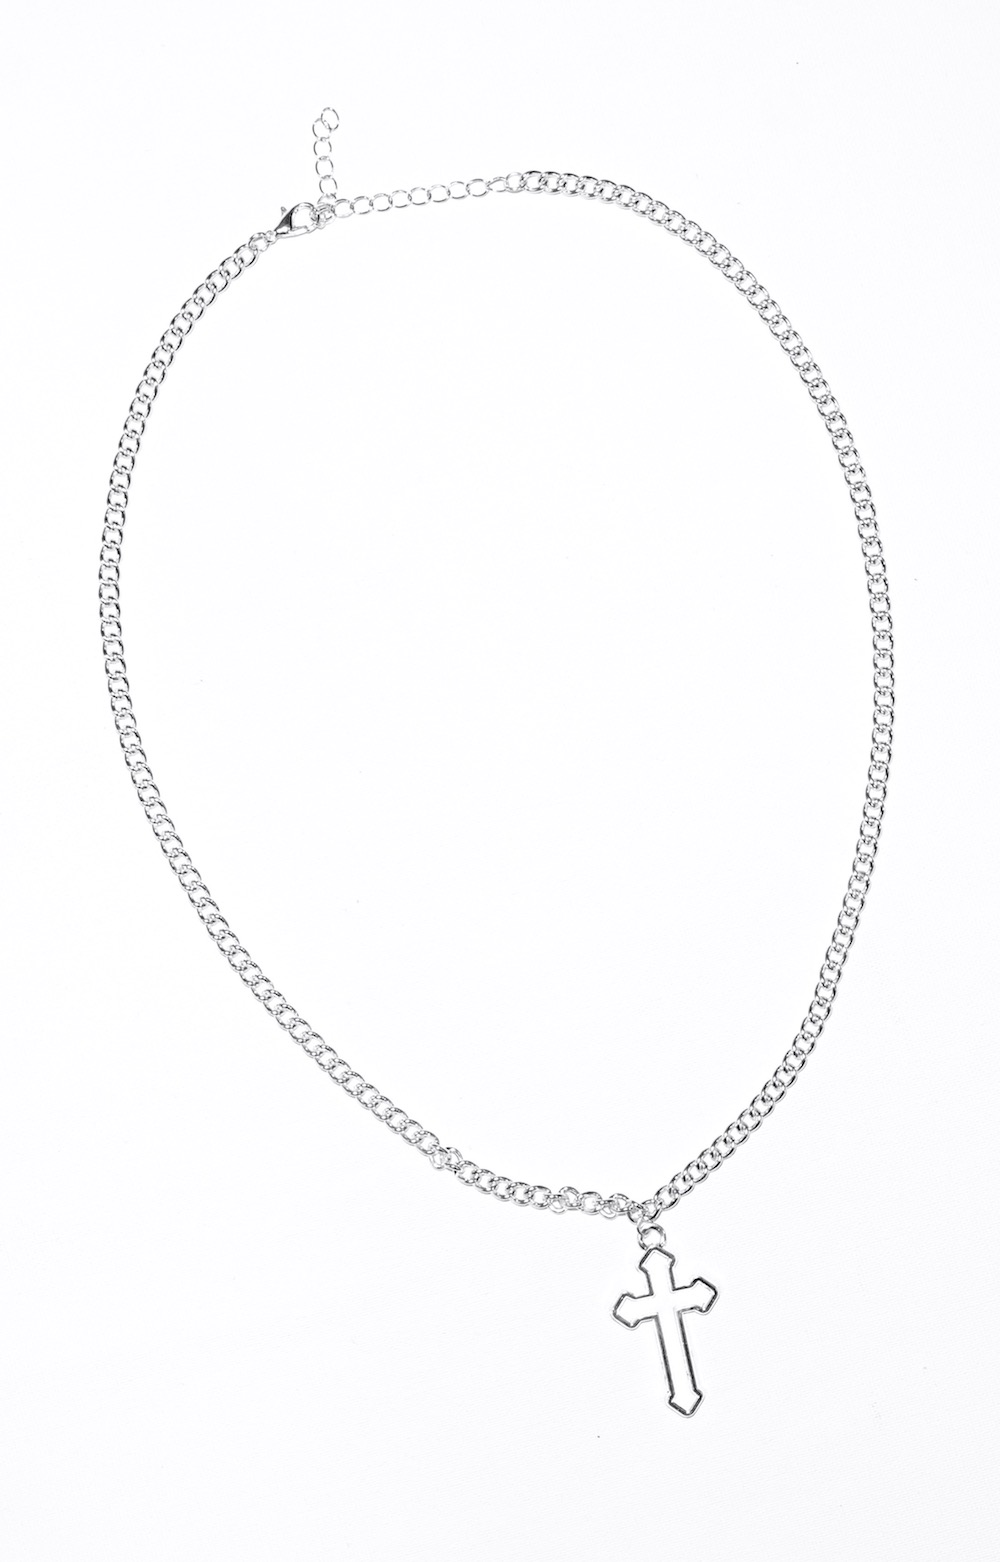 Die Cutting Cross Motif Necklace(silver)